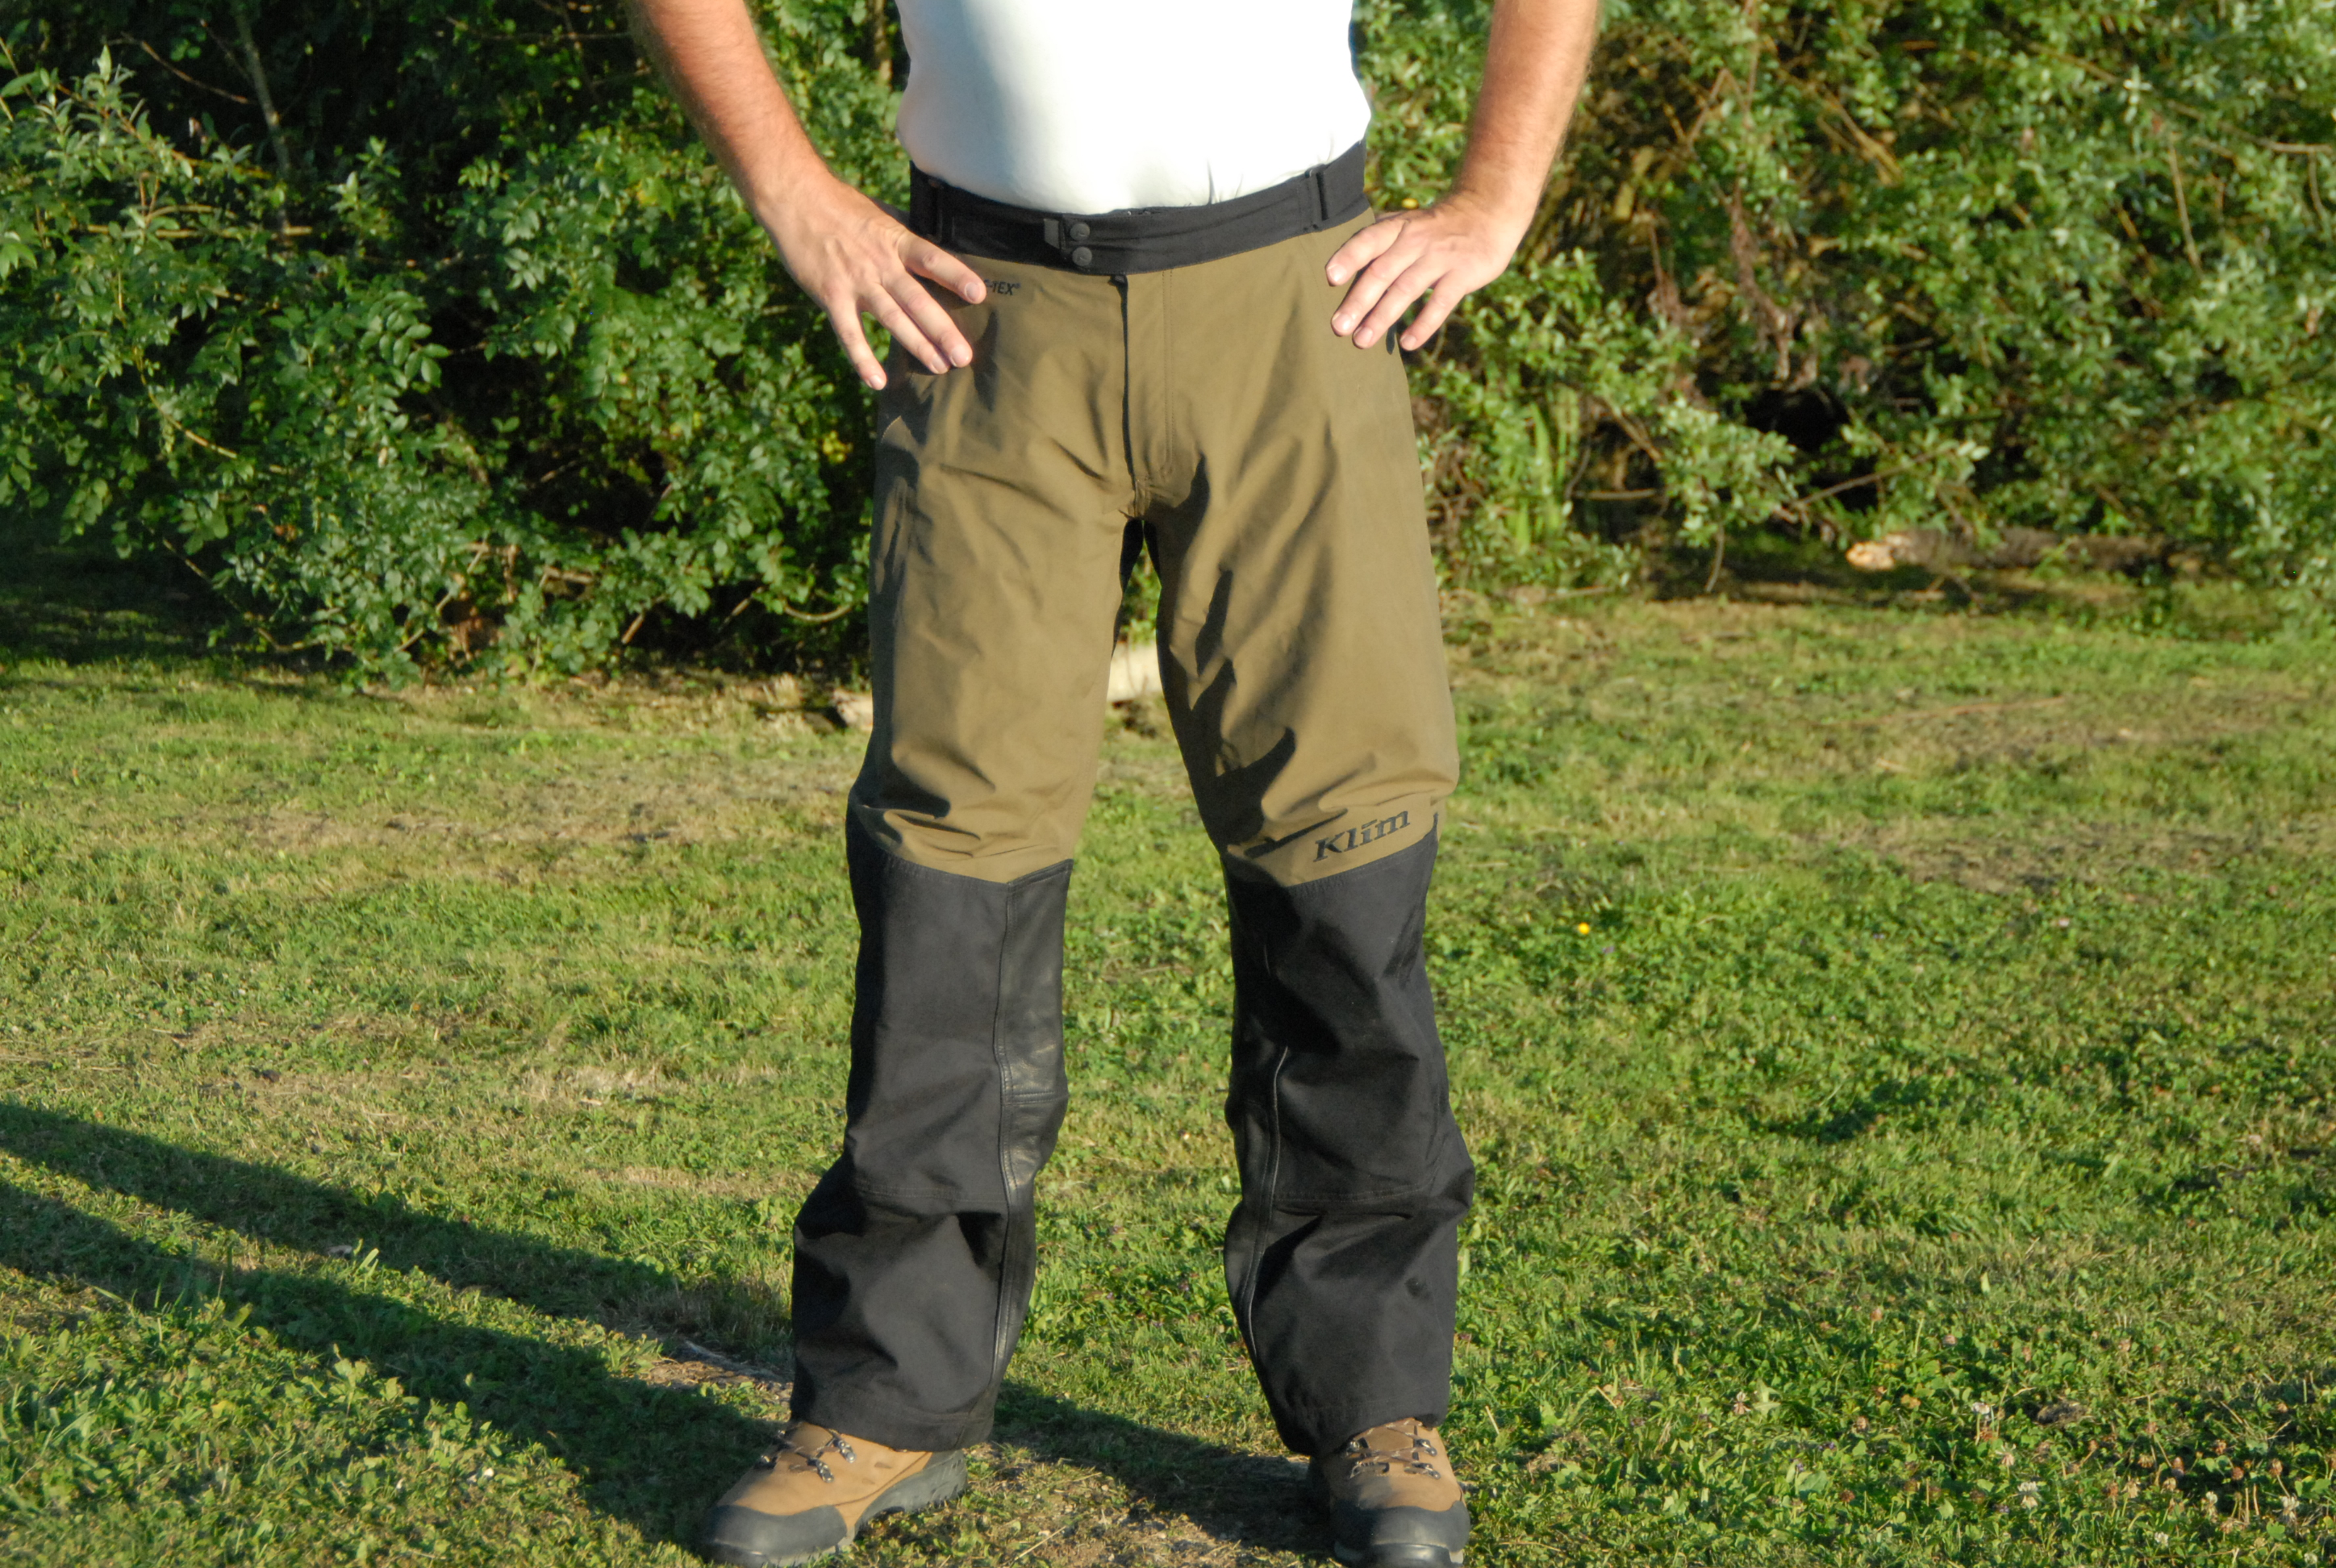 Le pantalon Klim Traverse de face